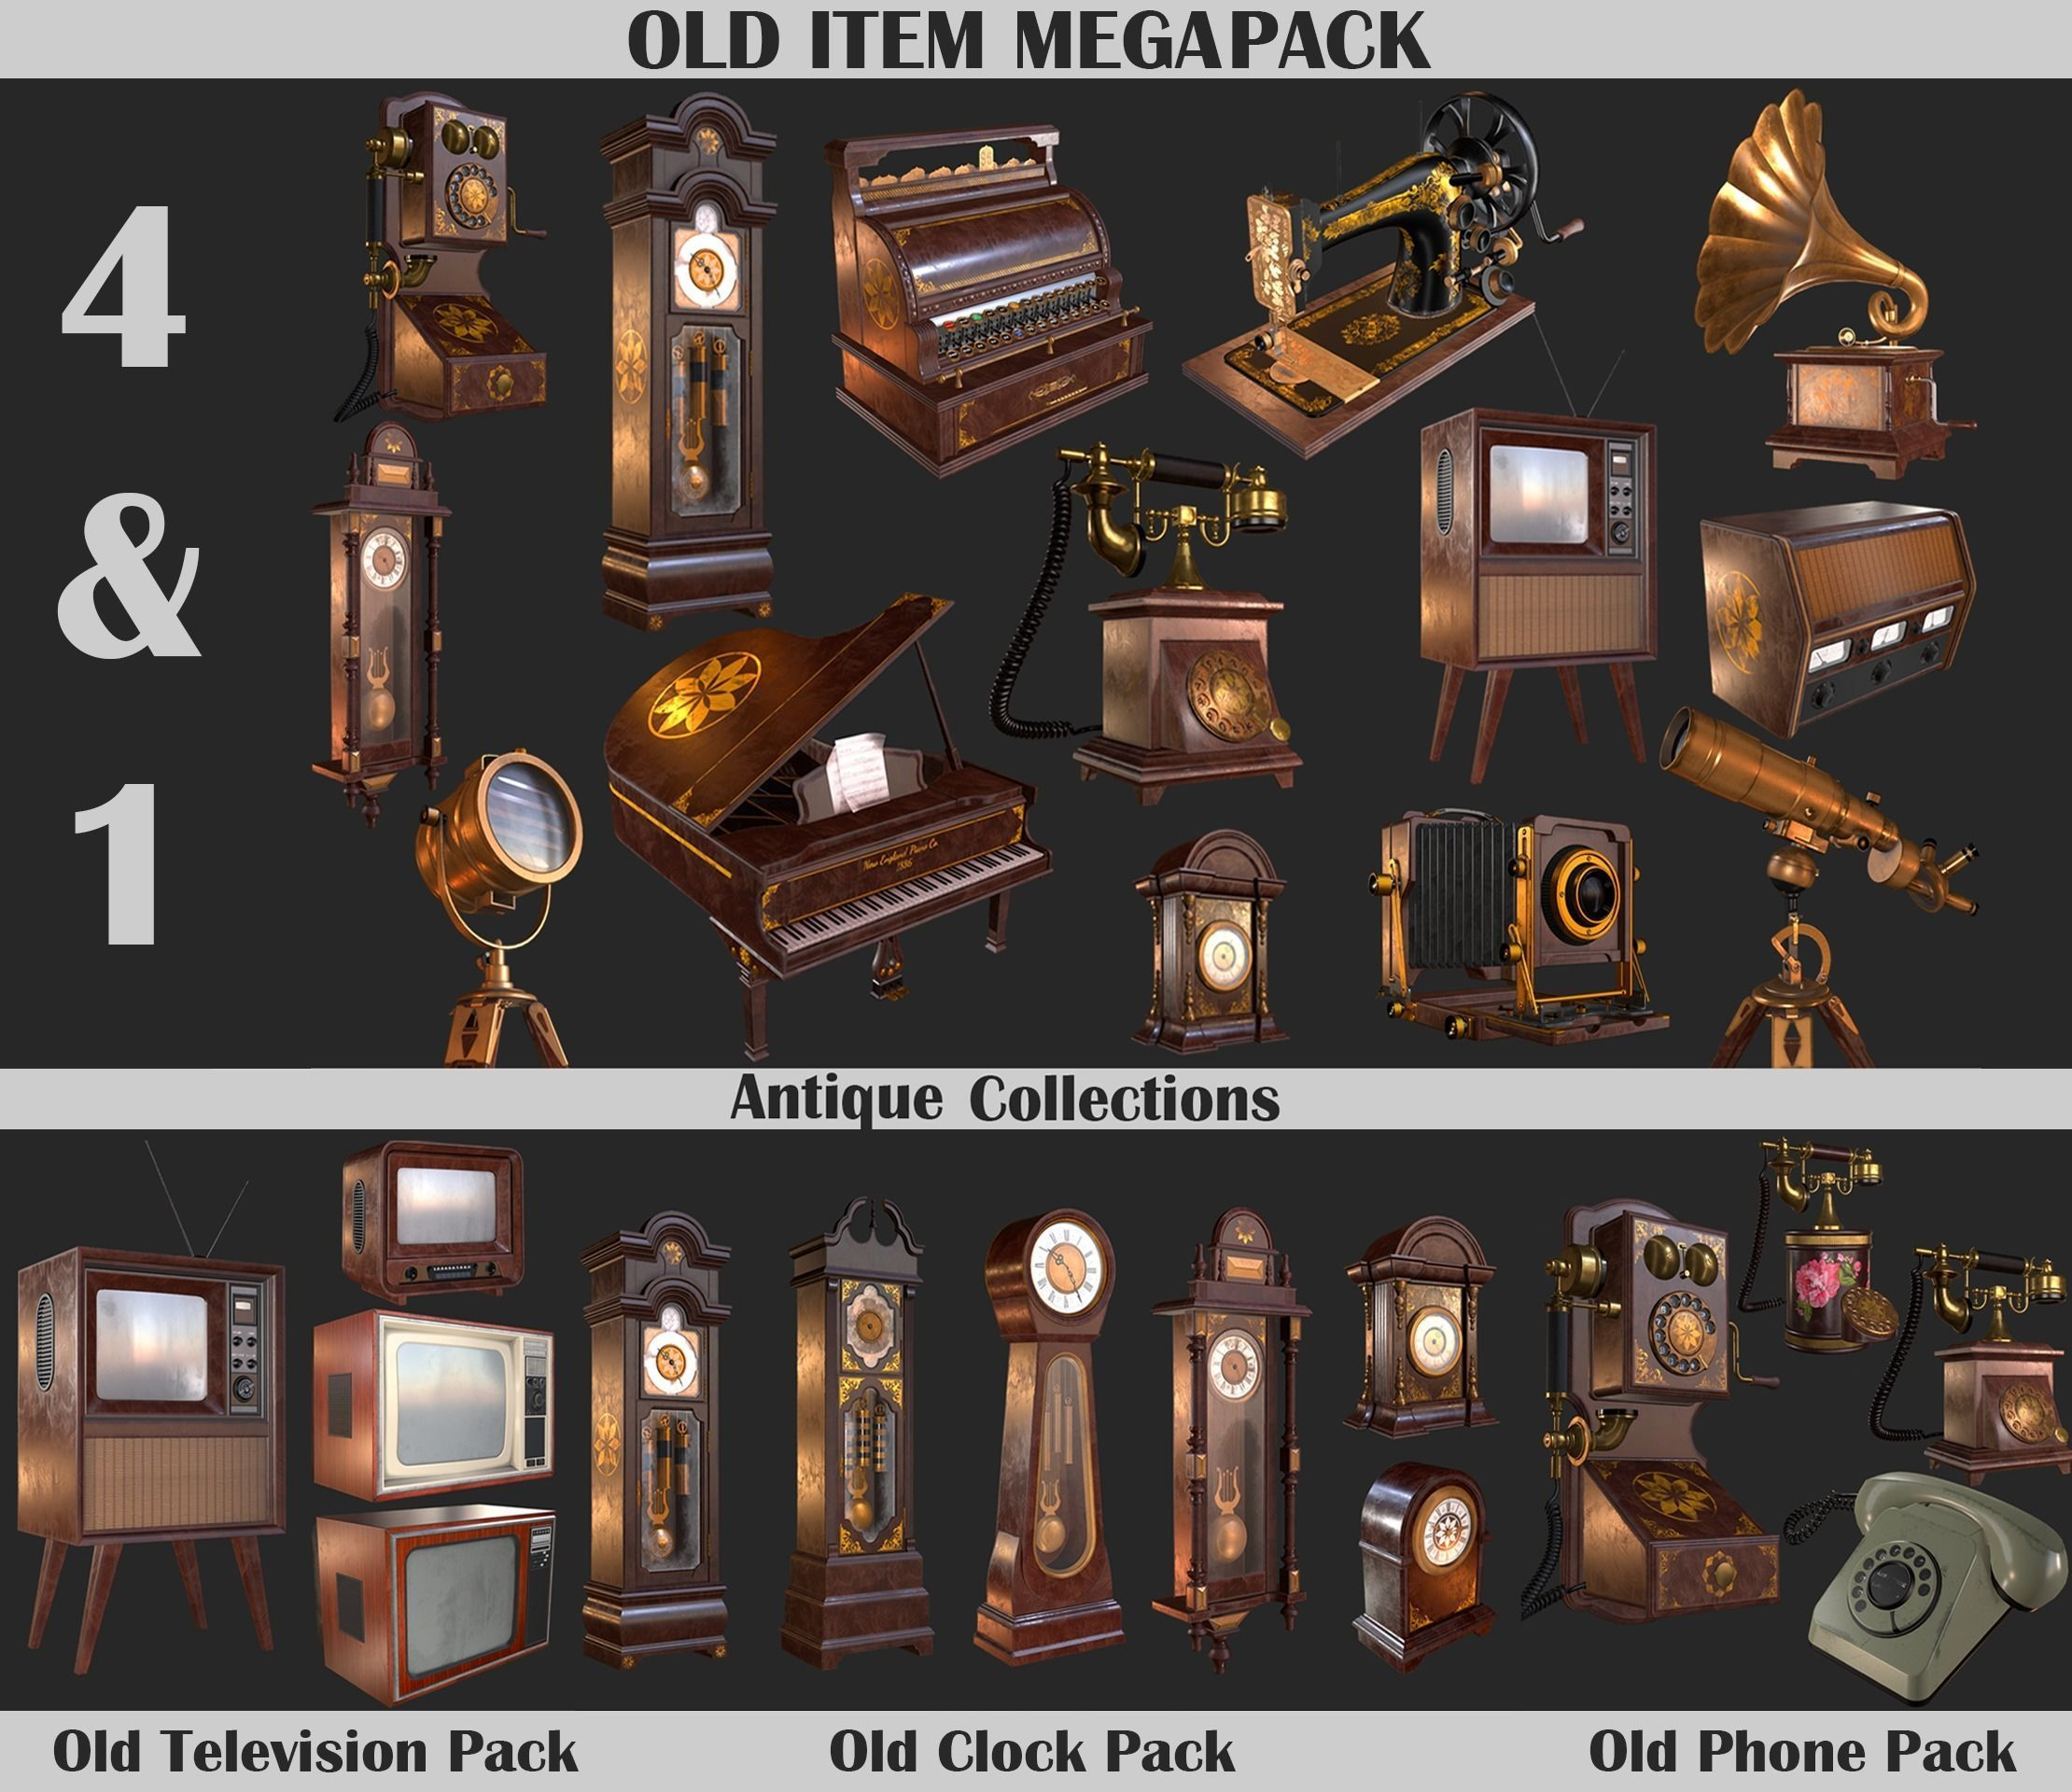 Old Item Mega Pack